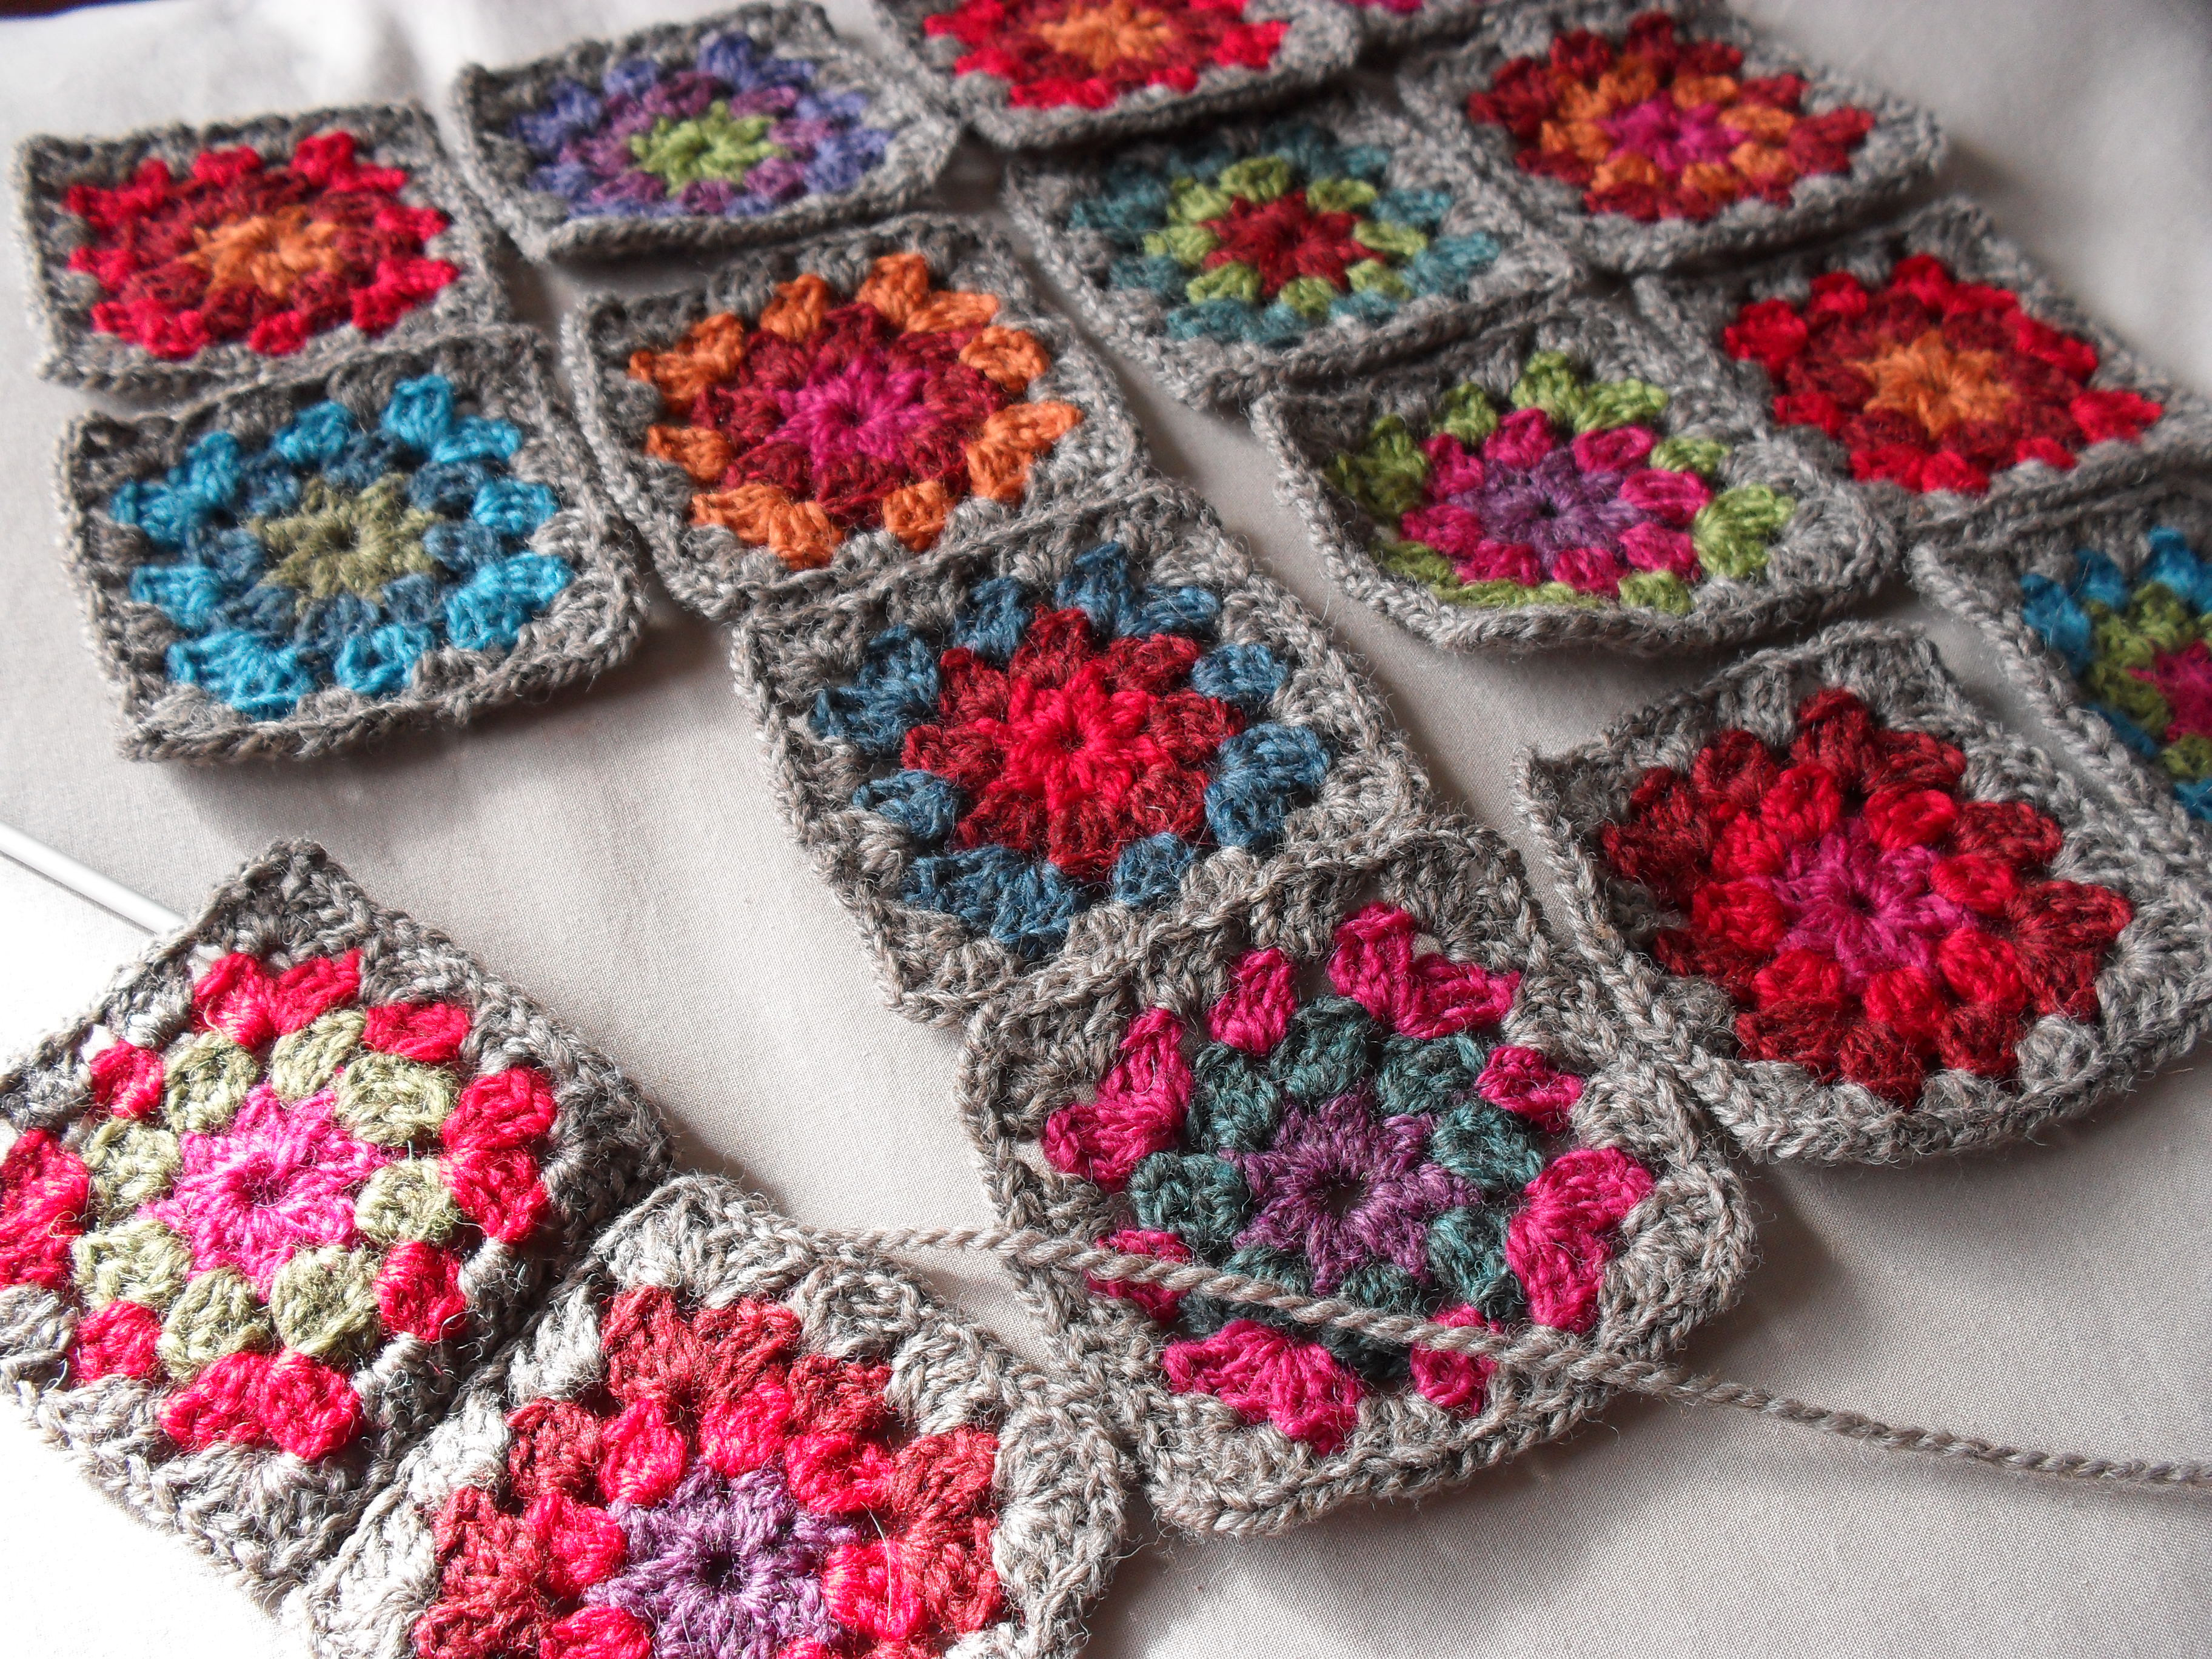 CROCHET GRANNY SQUARE TOGETHER Crochet — Learn How to